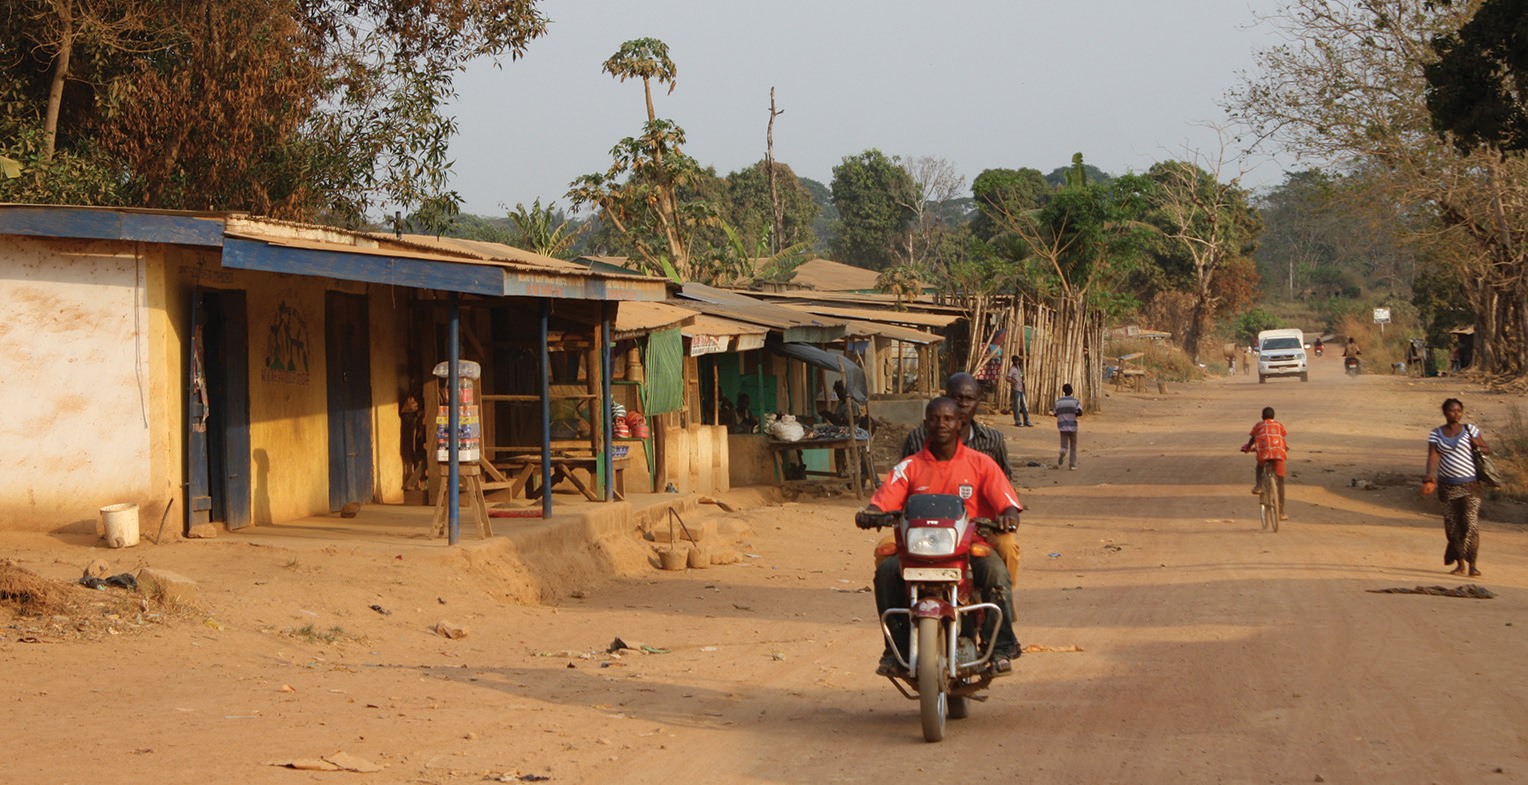 Ground zero: in the words of its paramount chief, Koindu was destroyed first by Sierra Leone's civil war and then by Ebola. Just across the border from Guinea, the town and surrounding villages were the early epicentre of the virus. An ongoing ban on Sunday trading – instigated to quell the epidemic – has also robbed the town of its main market day and livelihood, leaving the streets quiet and empty. </p>  <p>